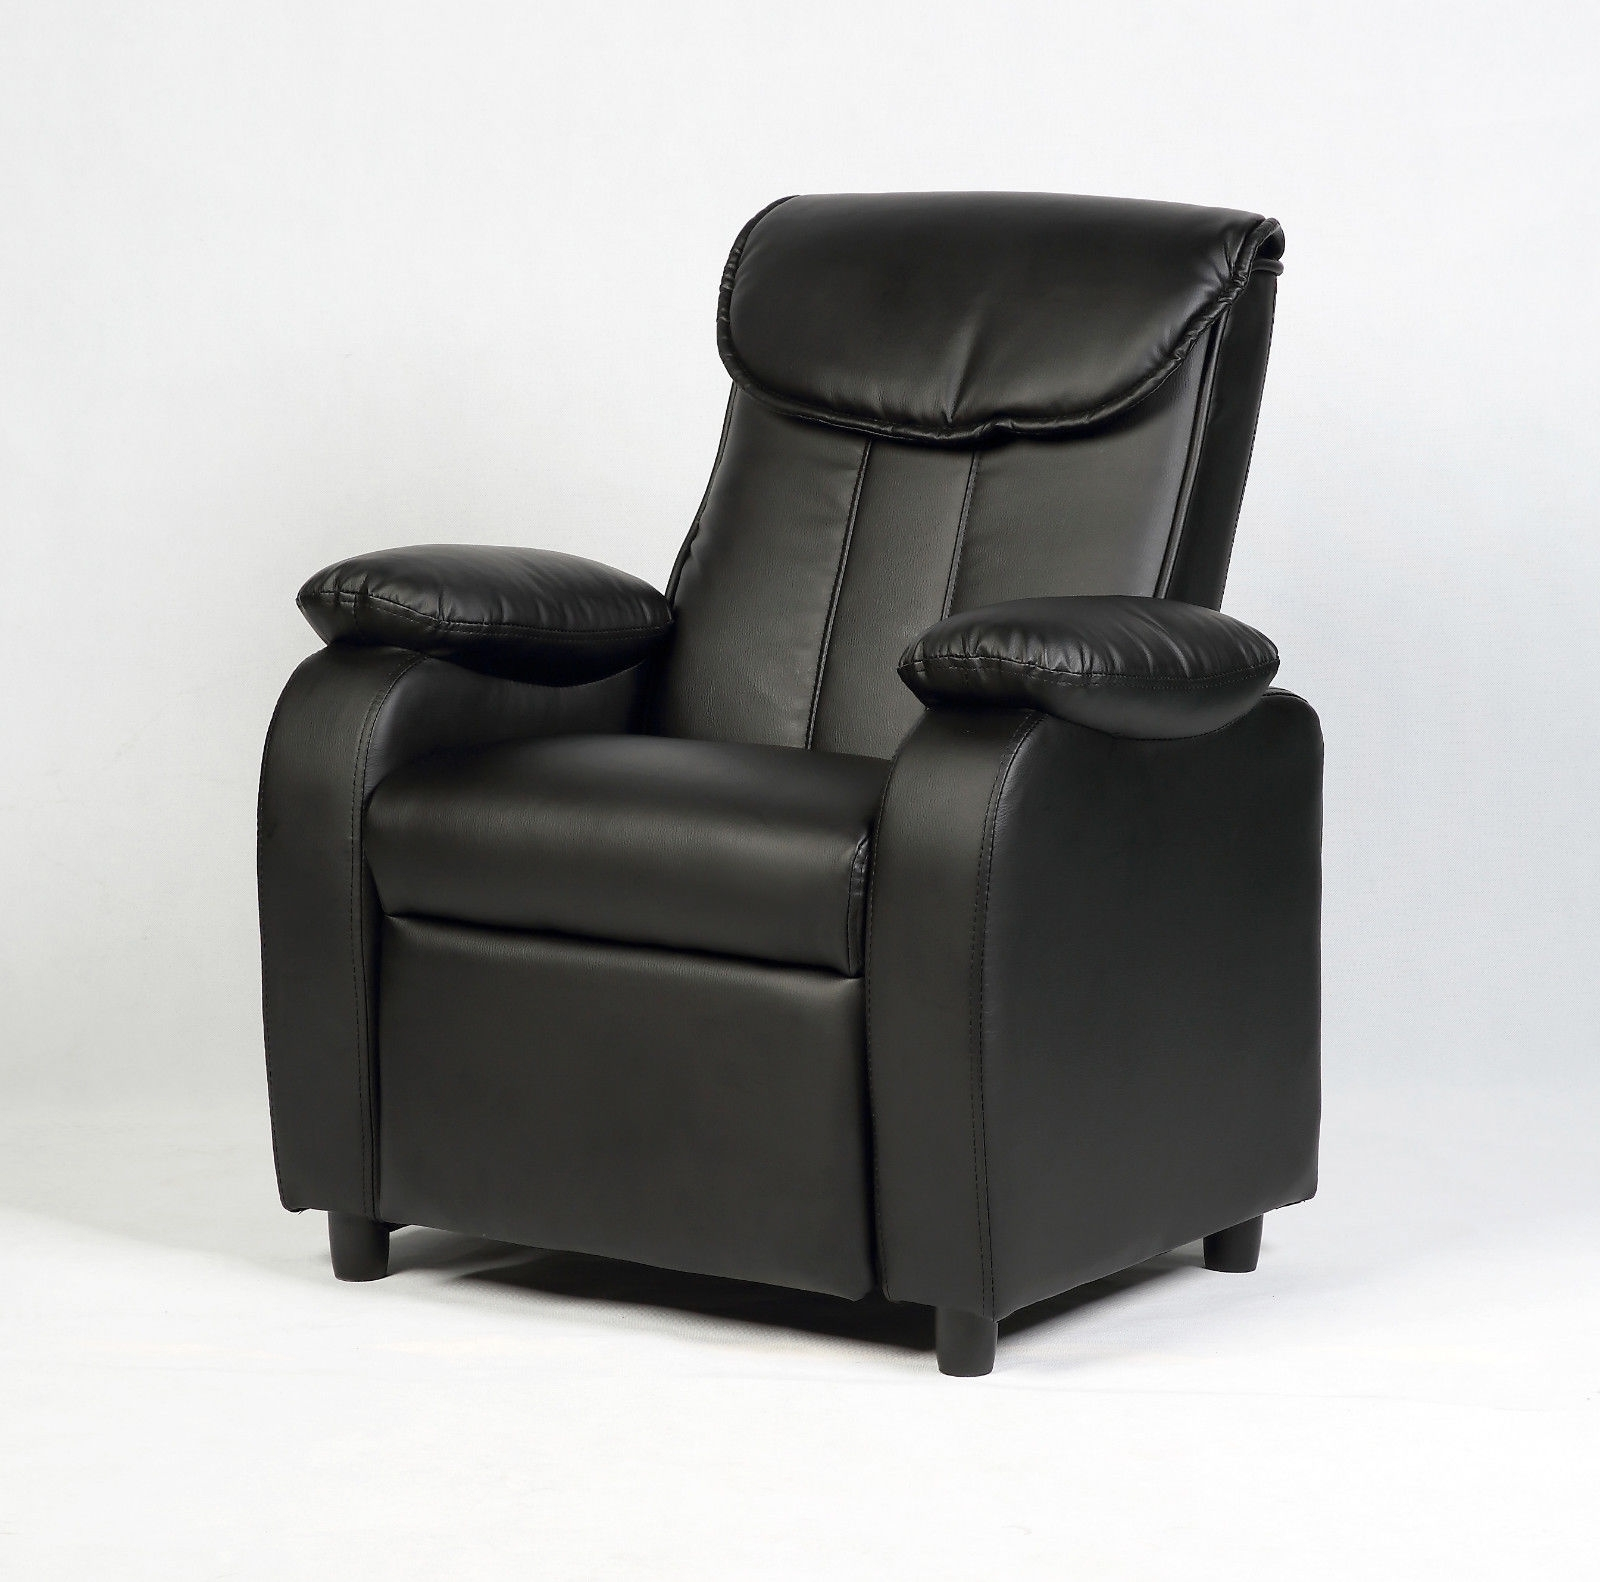 Most Recently Released Sofa Chairs For Living Room Within Home Designs : Chair For Living Room Living Room Great Sofa Chairs (View 17 of 20)